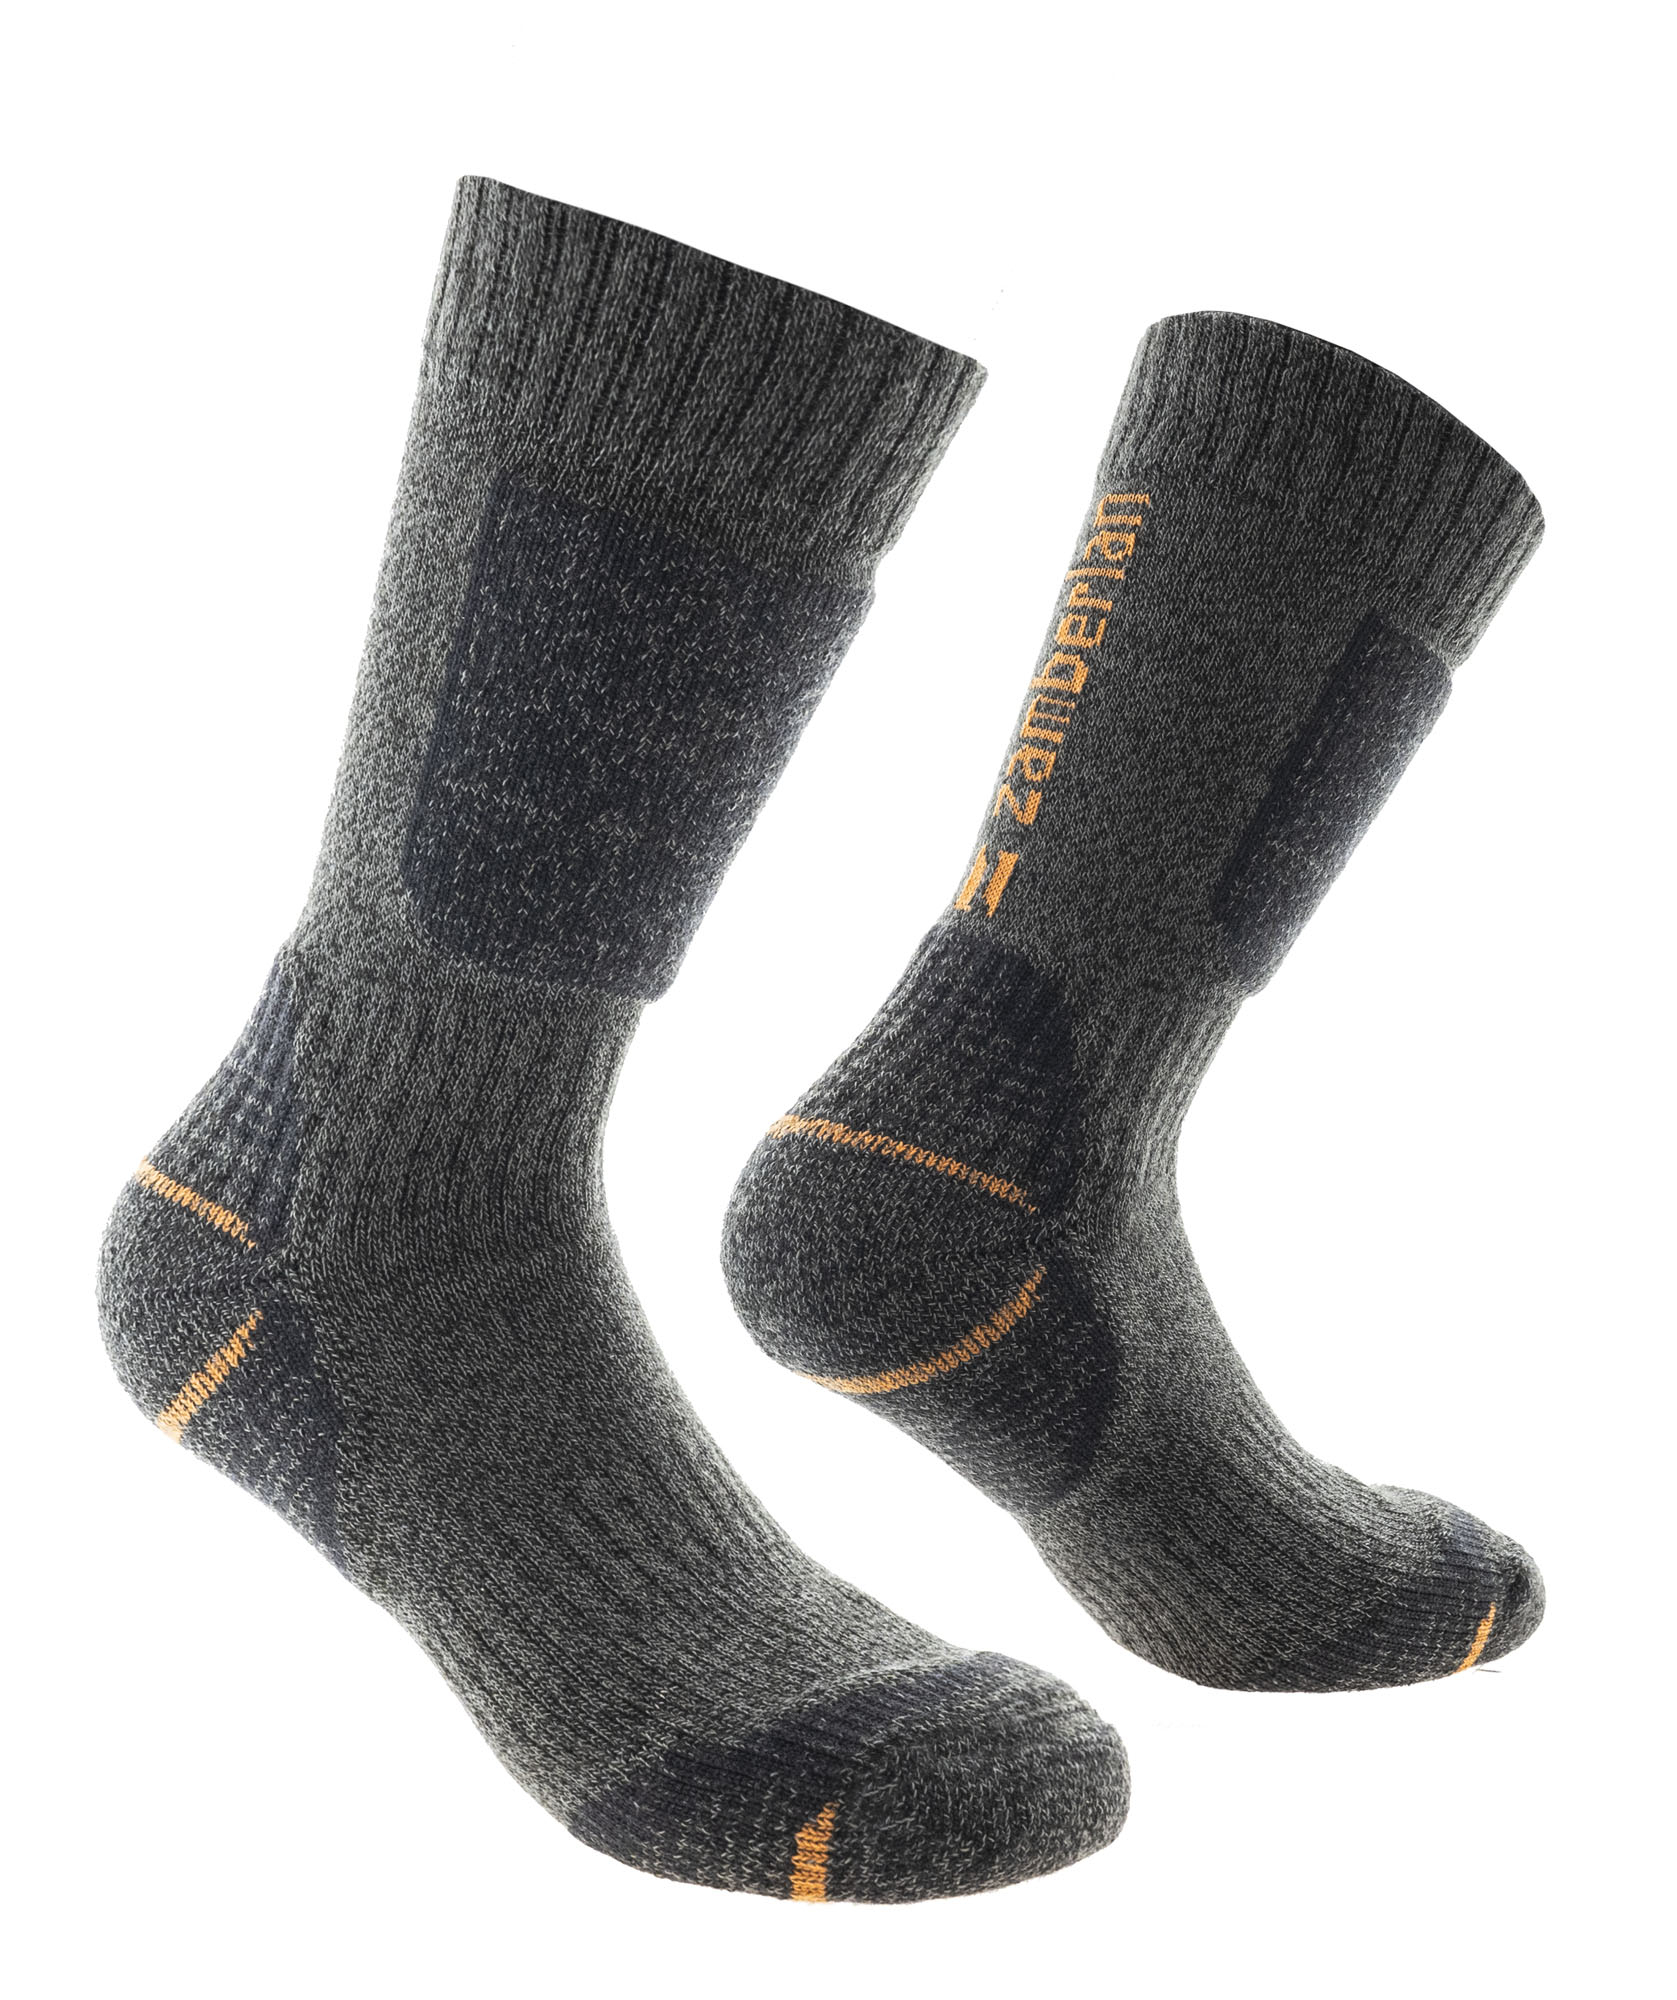 HIKING SOCKS ZAMBERLAN® BACKPACKING SCREE - Grey